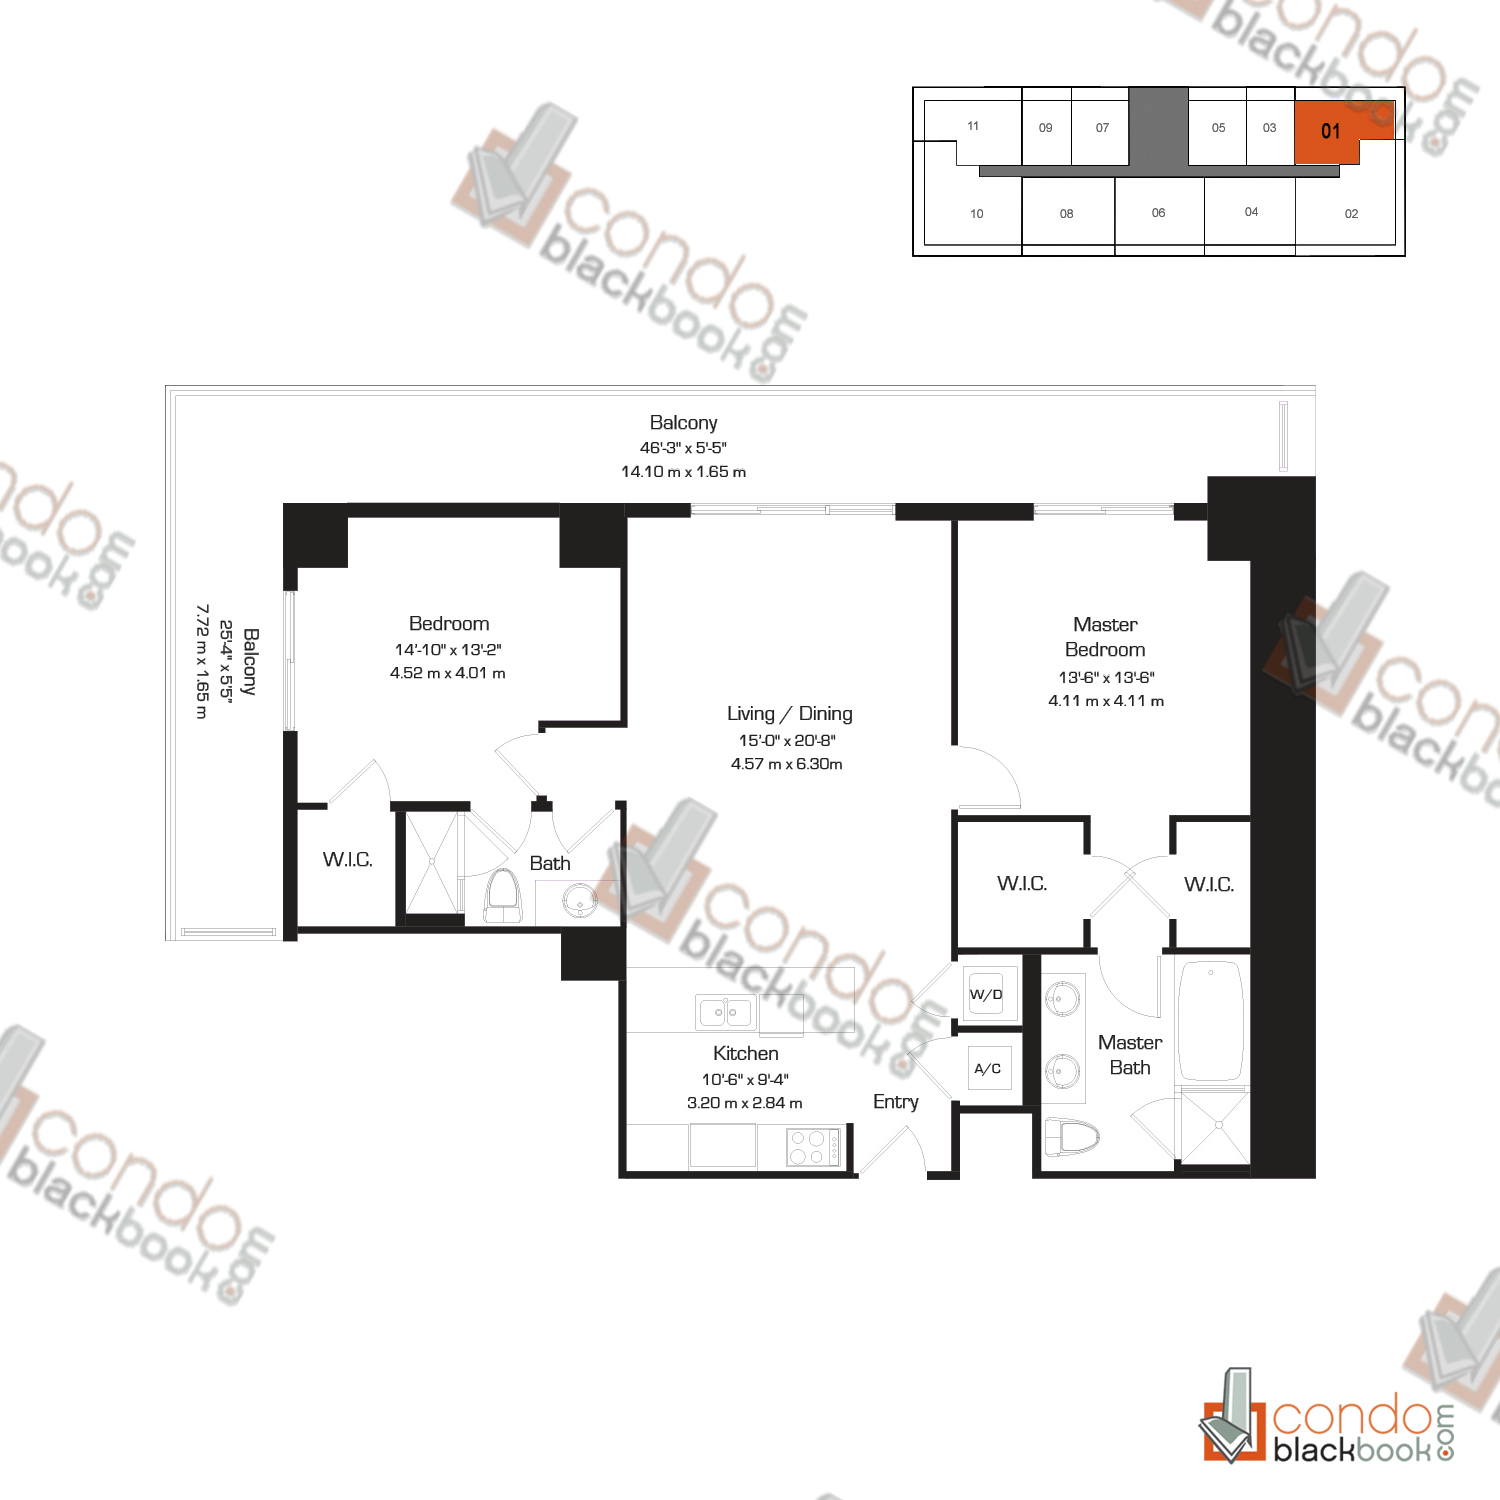 Floor plan for 50 Biscayne Downtown Miami Miami, model J, line 01, 2/2 bedrooms, 1,256 sq ft